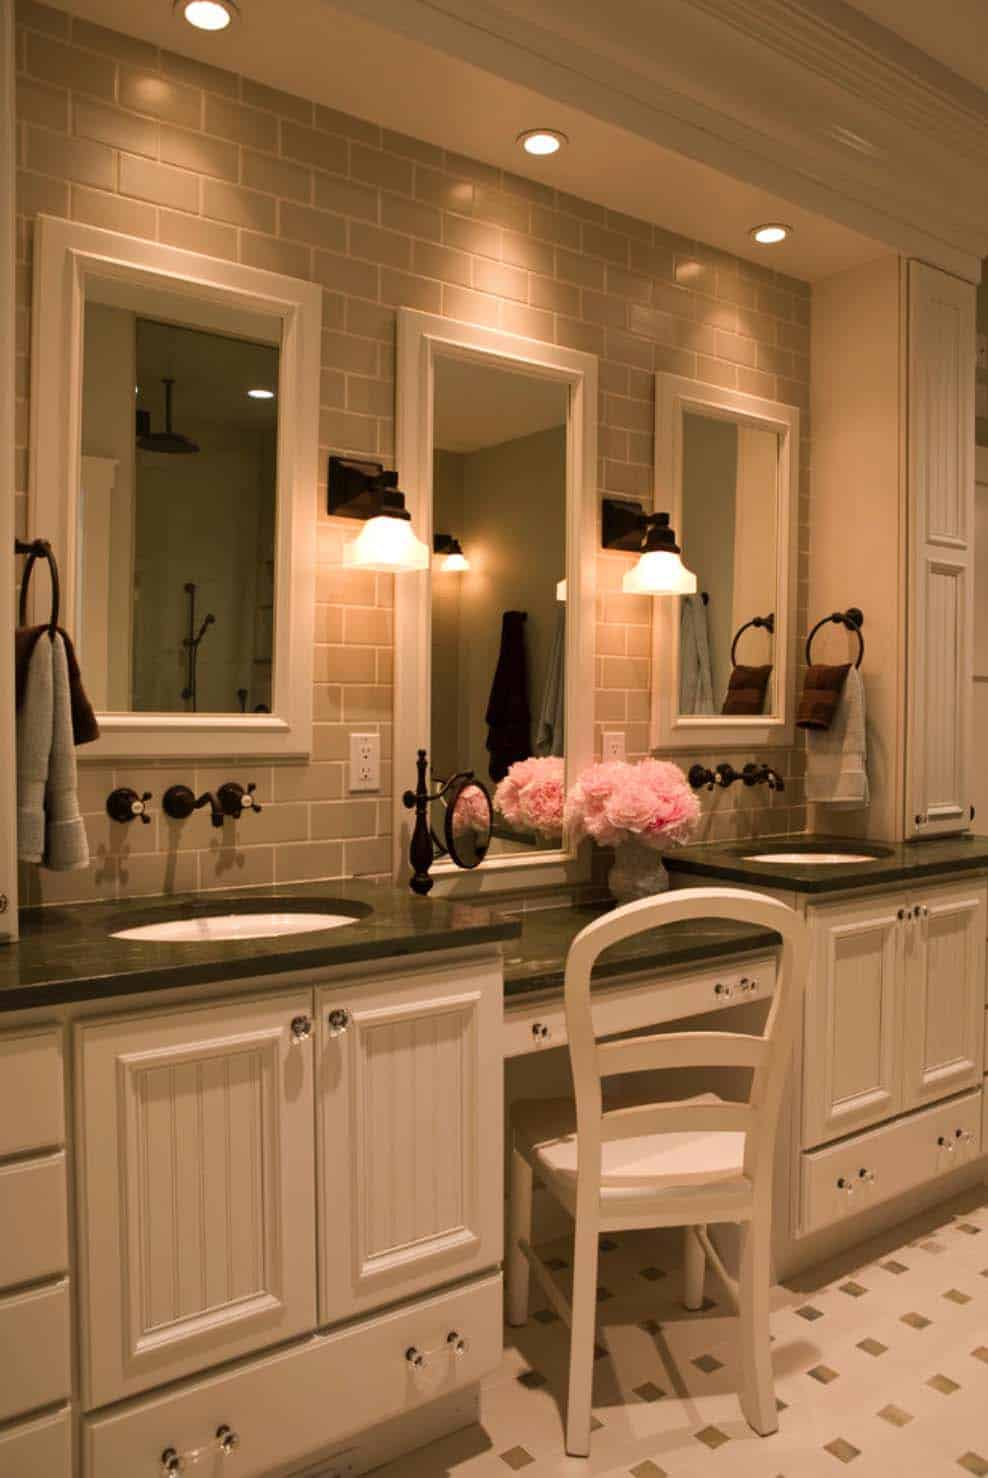 53 Most fabulous traditional style bathroom designs ever on Bathroom Remodel Design Ideas  id=92336